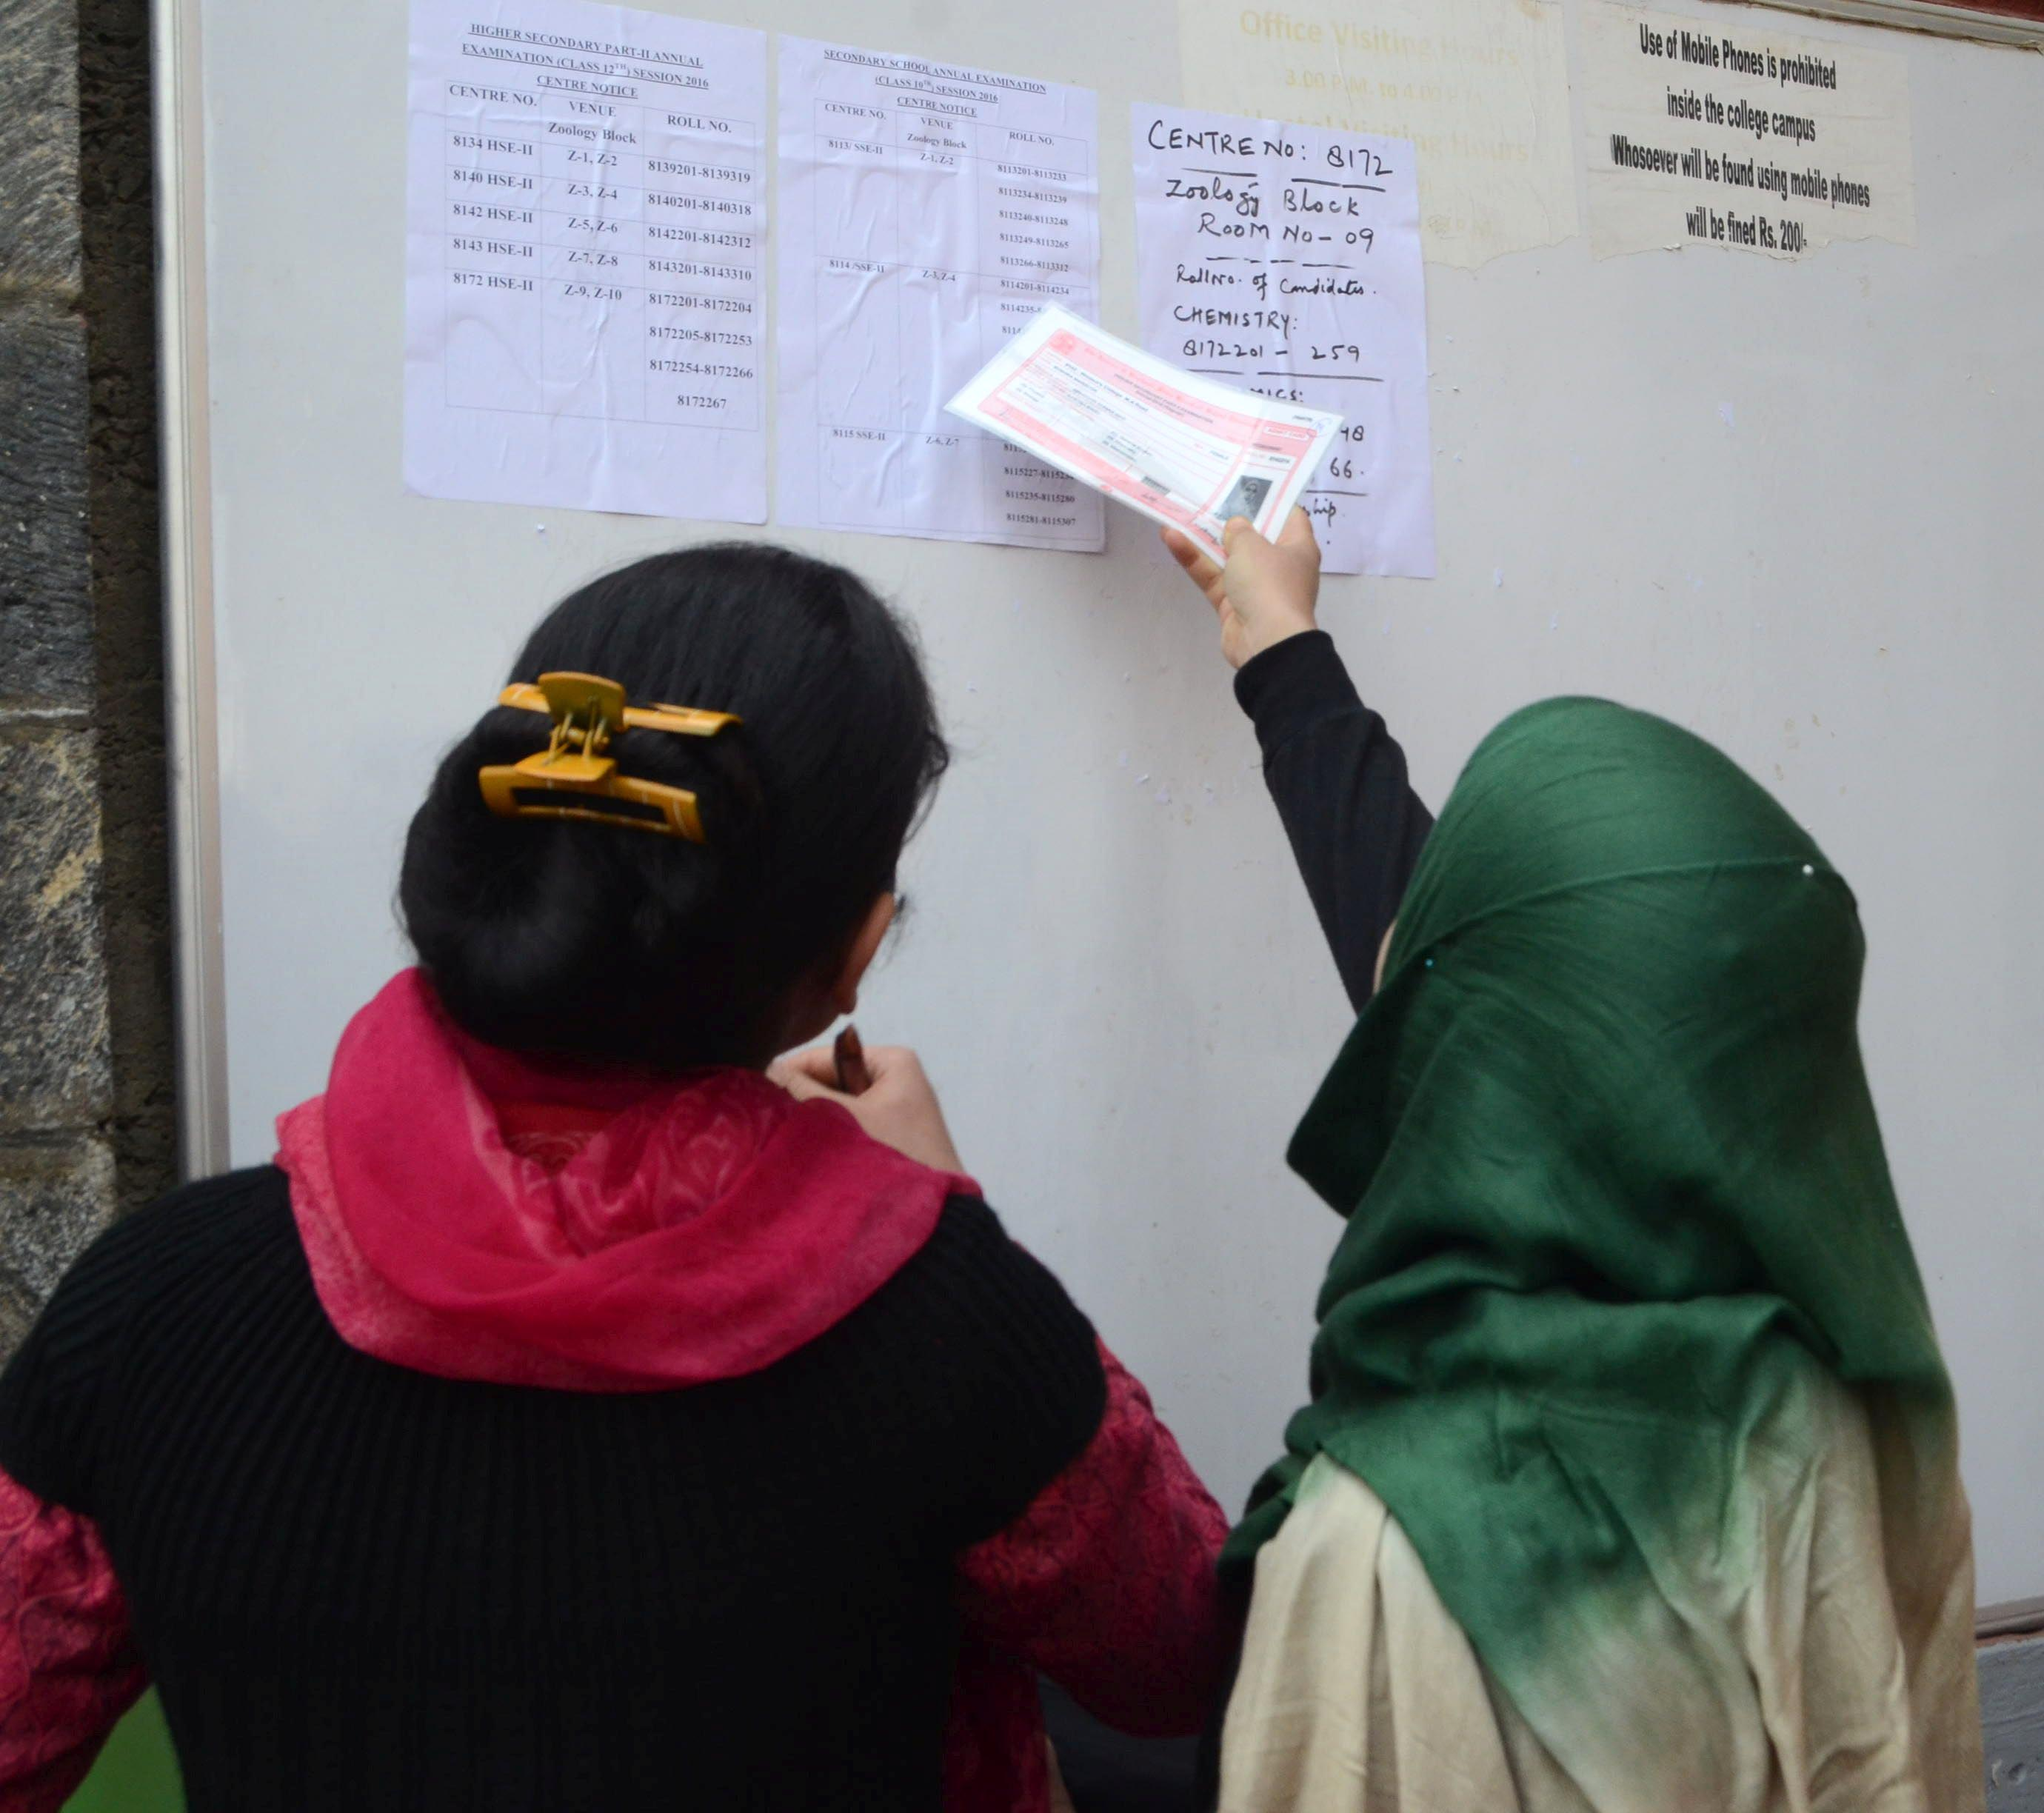 A student tries to locate her seat in the examination centre at Women's College, MA road, srinagar.